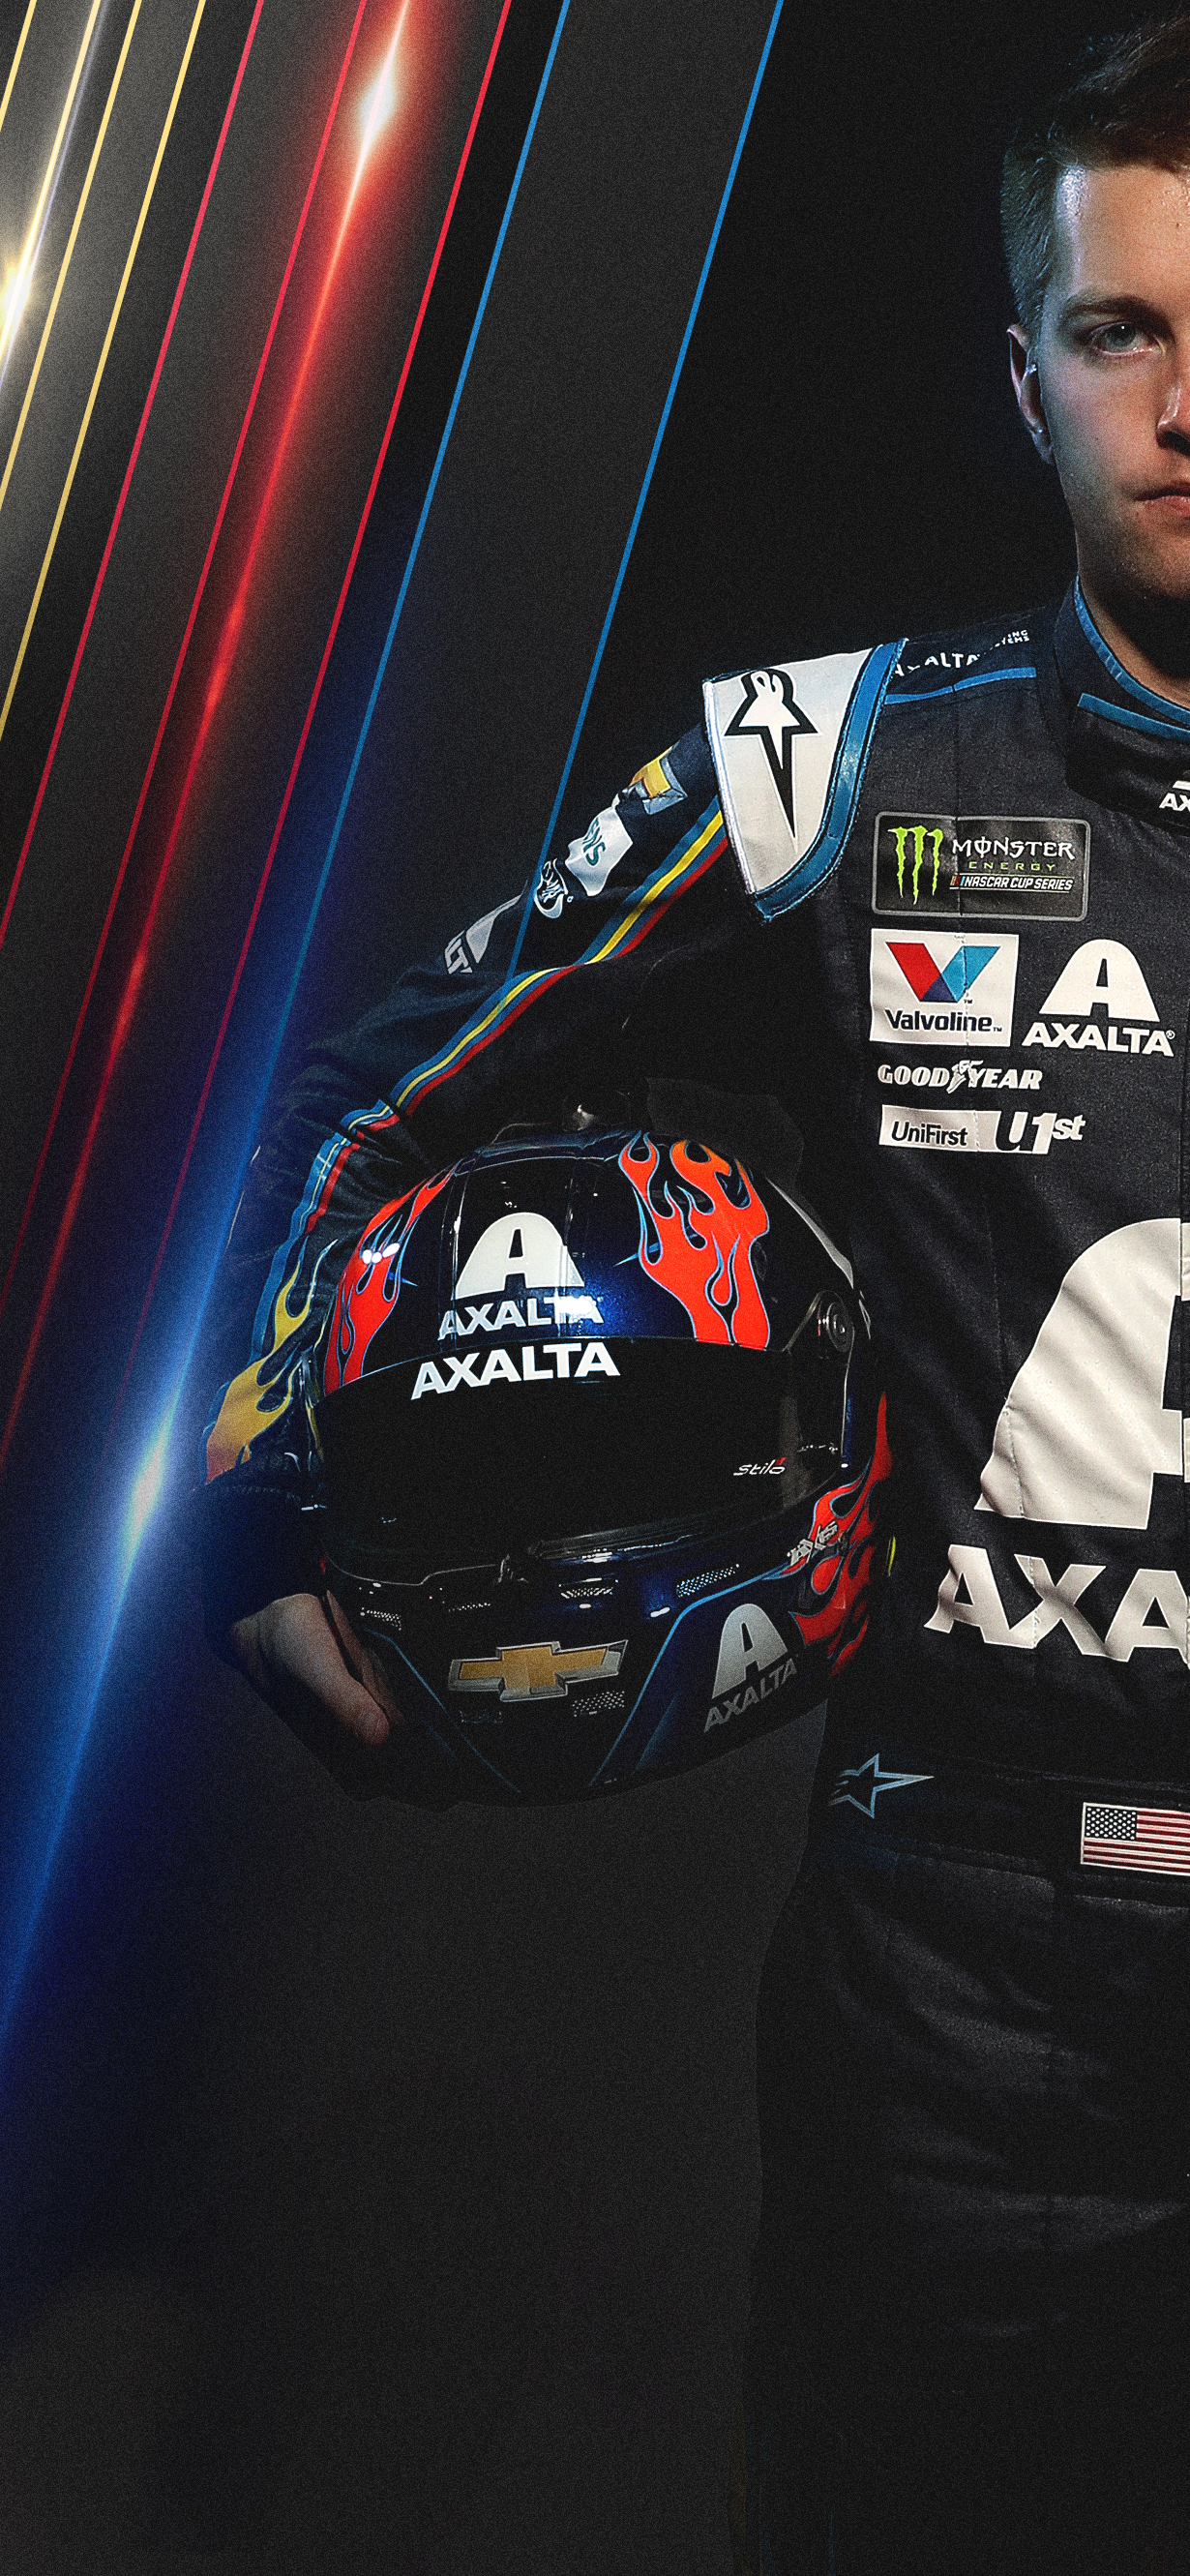 2019 NASCAR Wallpapers   Official Site Of NASCAR